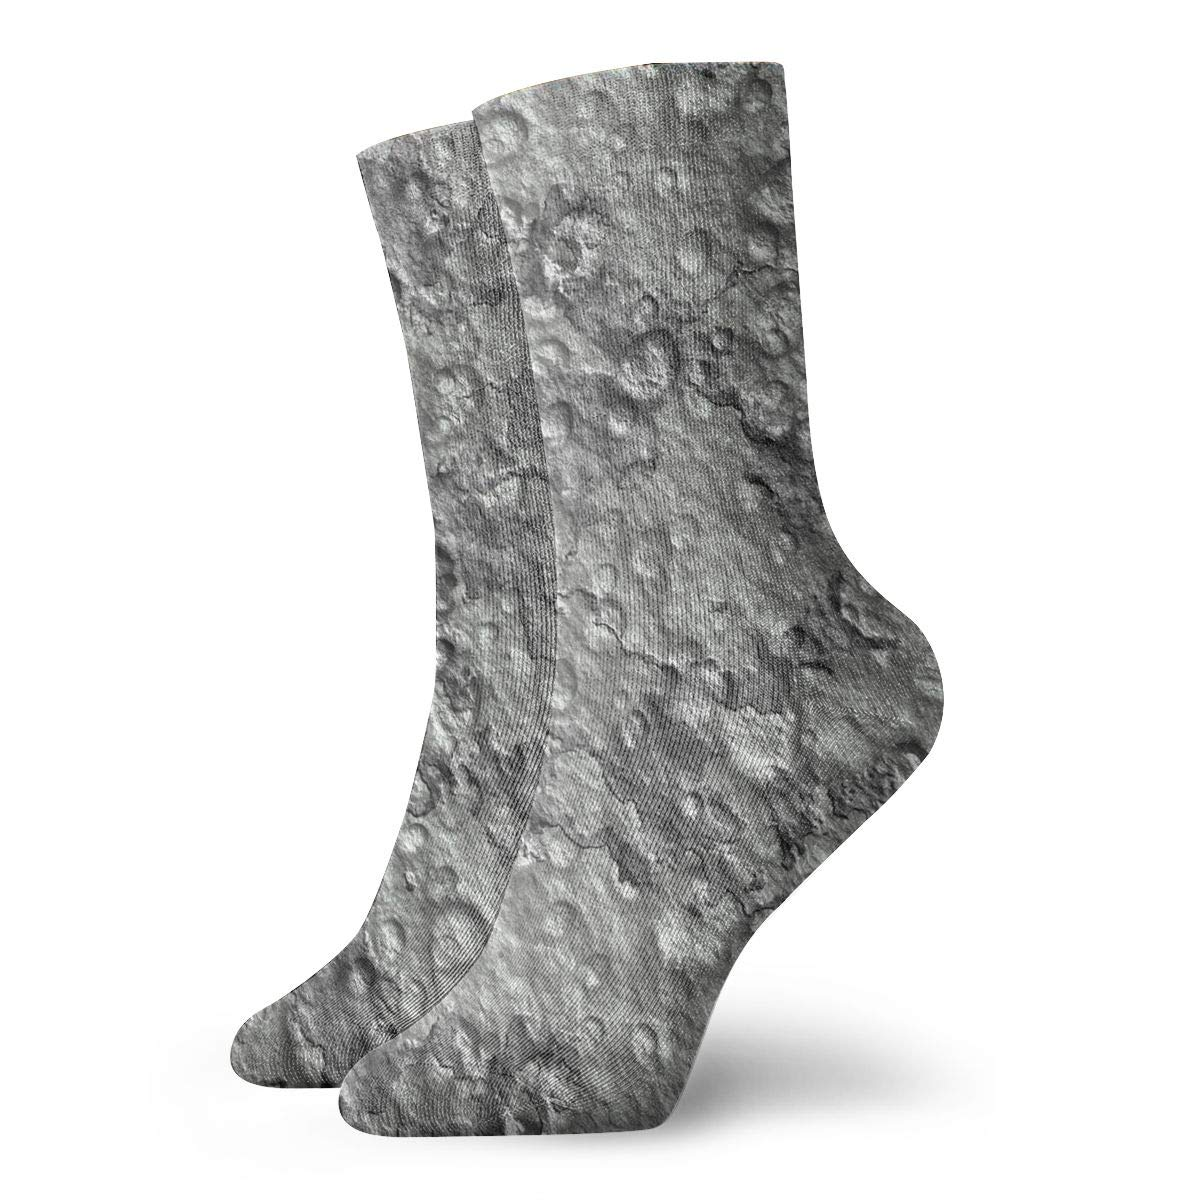 Running Baseball TAOMAP89 A Moon Crater Tiles Pattern Compression Ankle Socks for Women and Men Wool Stance Socks Best for Flight